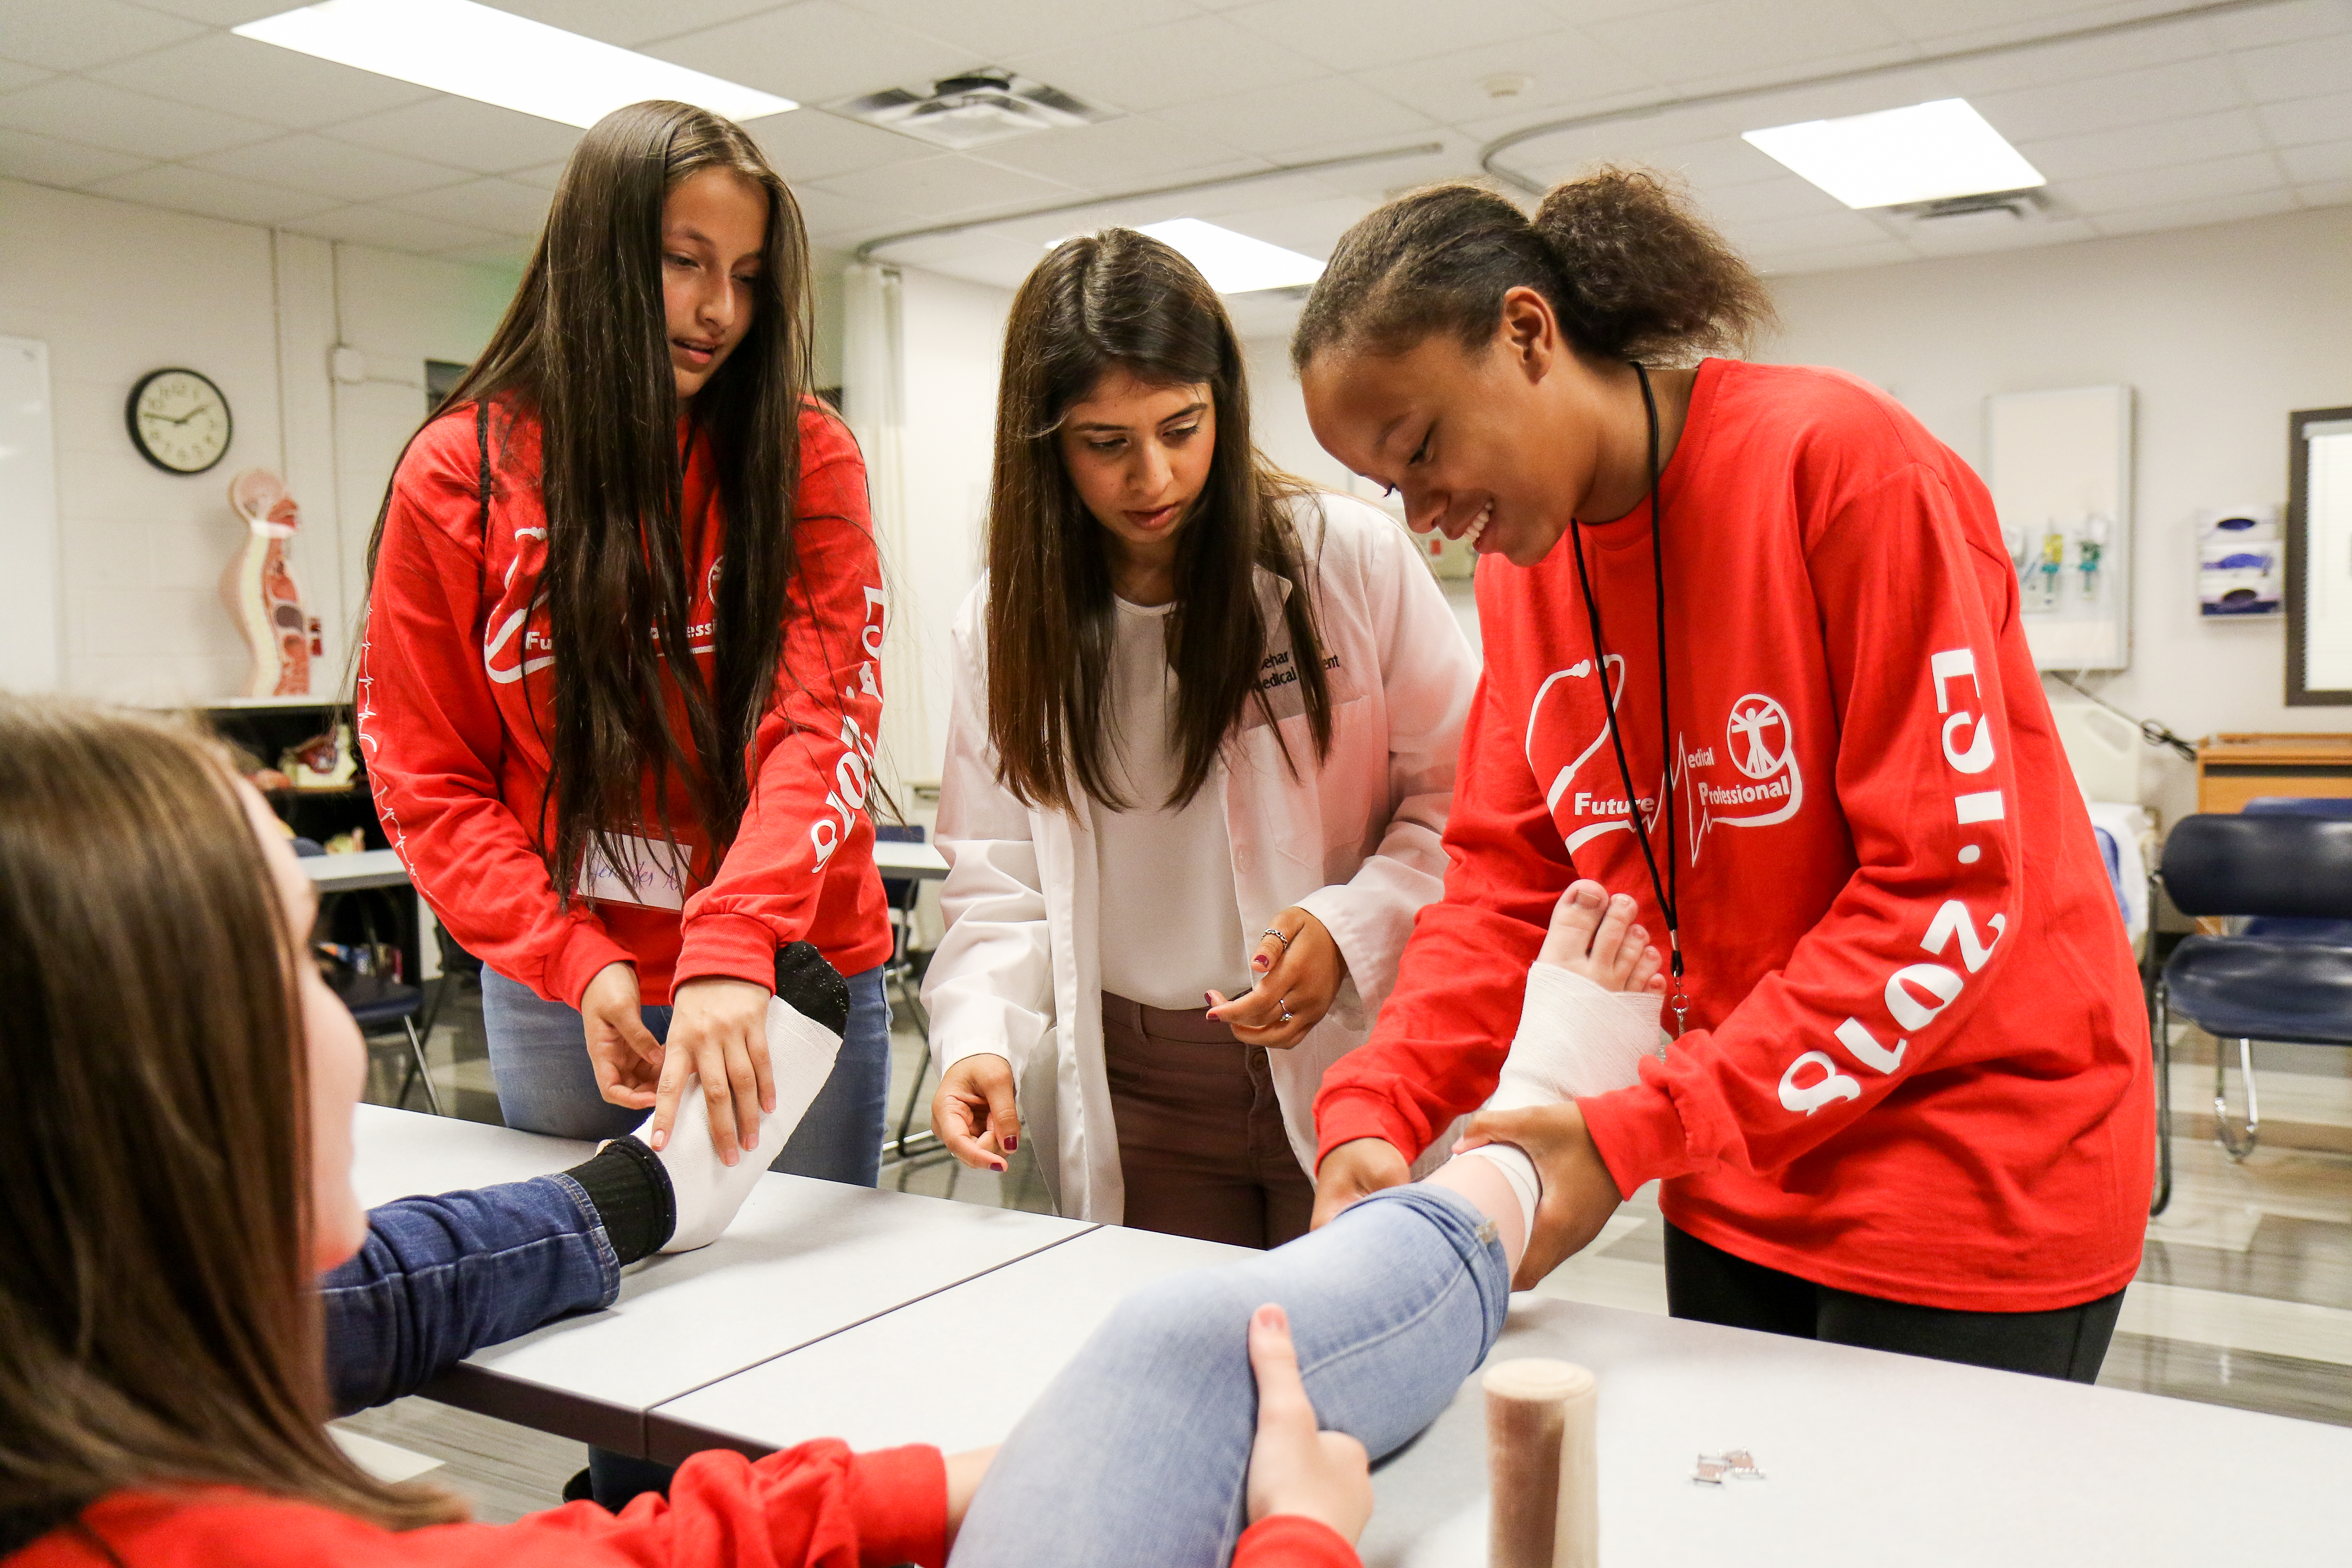 Students work on Ankle Wrapping in DSC Simulation Lab